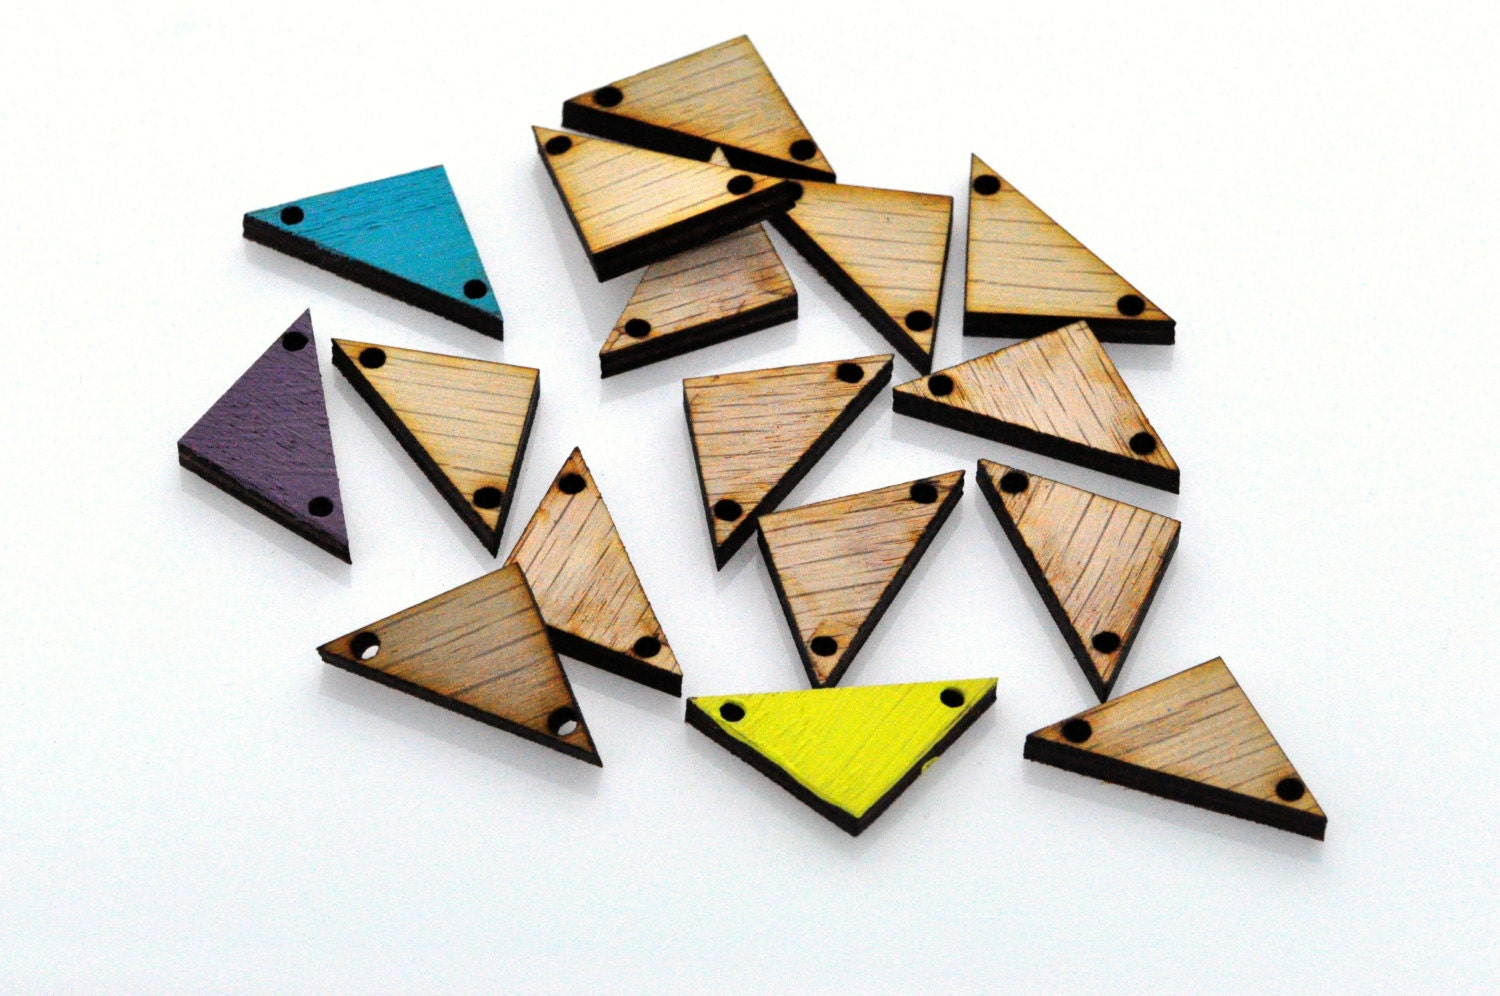 12 Laser Cut Wood Triangles Unfinished Wood Triangles Tile for